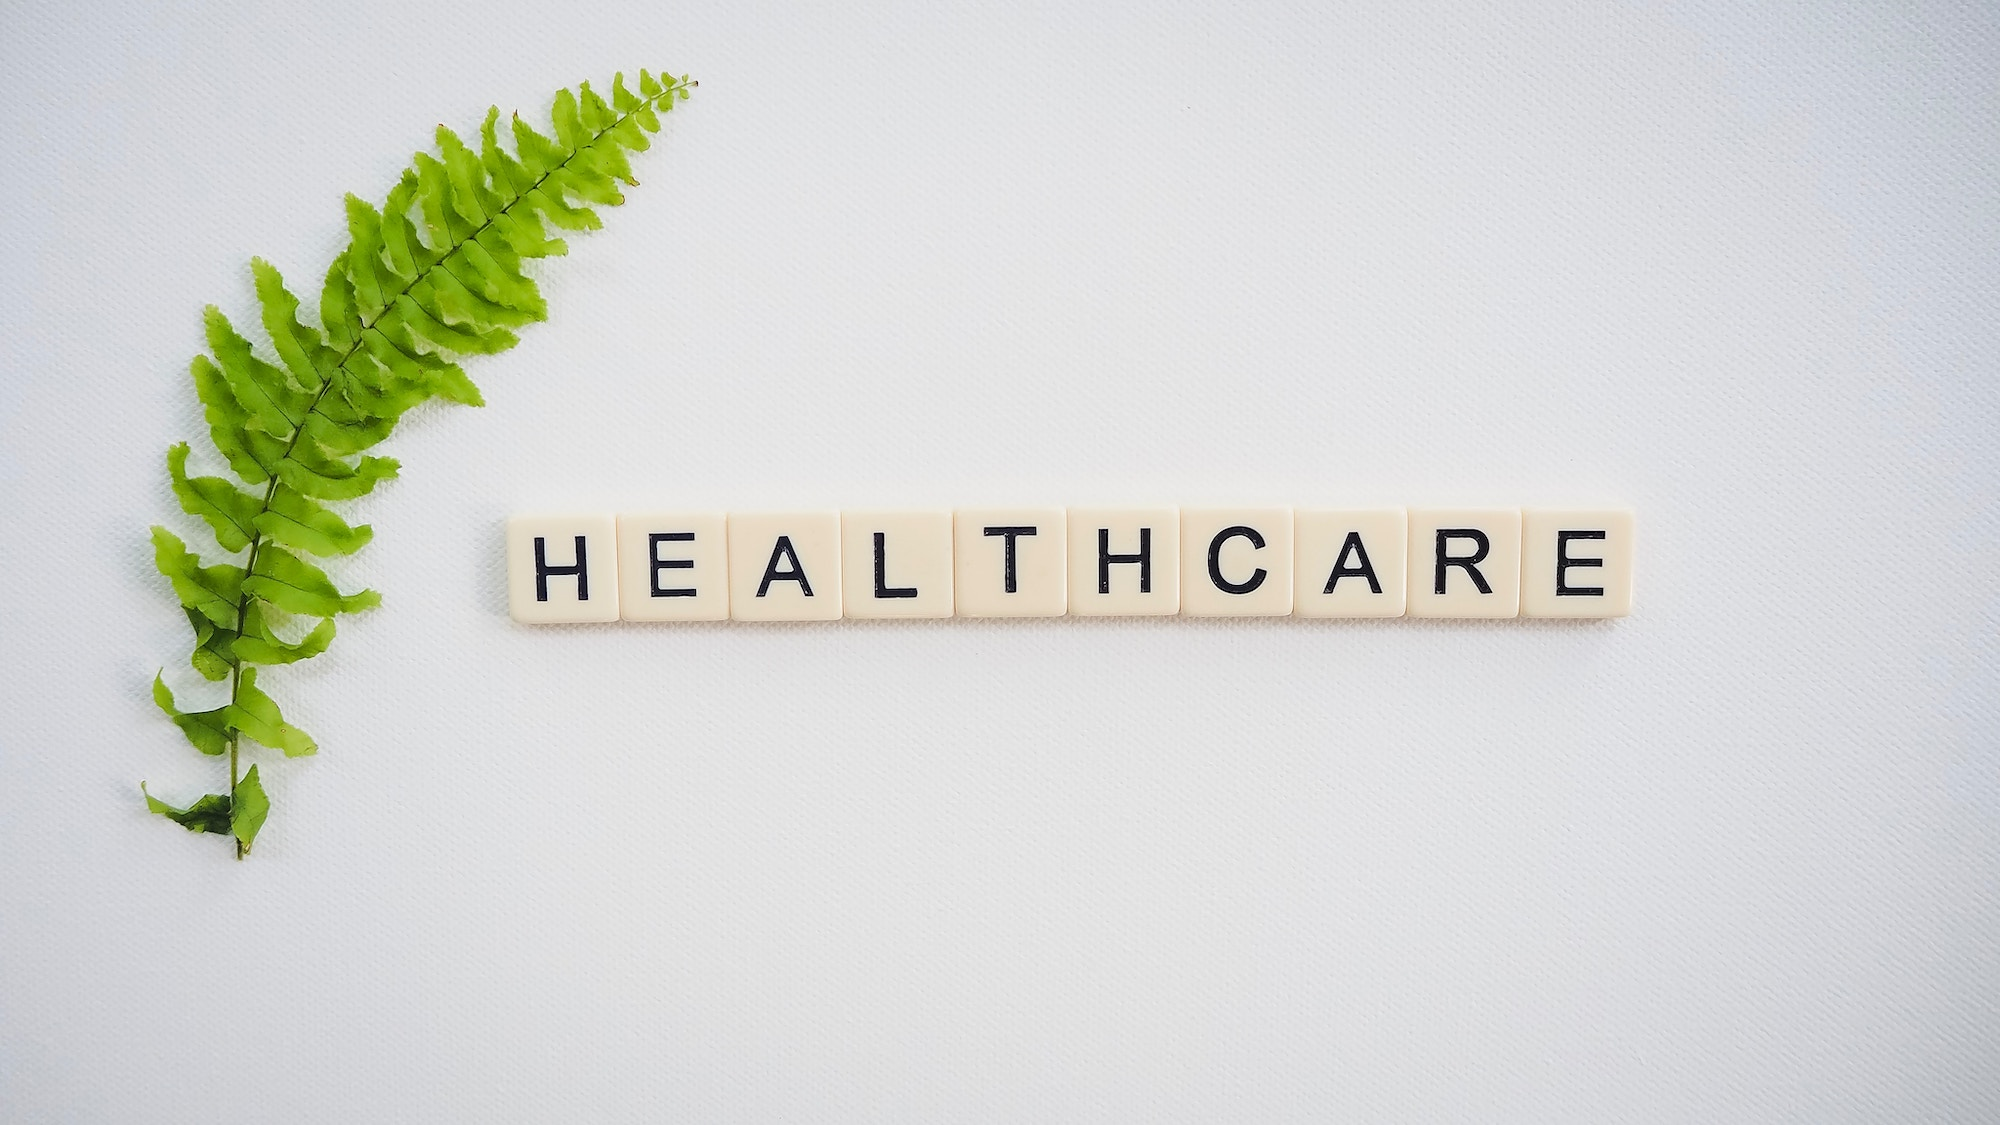 Scrabble letters spell out the word 'healthcare' in a neat row with a fern placed of the left-hand side of the word